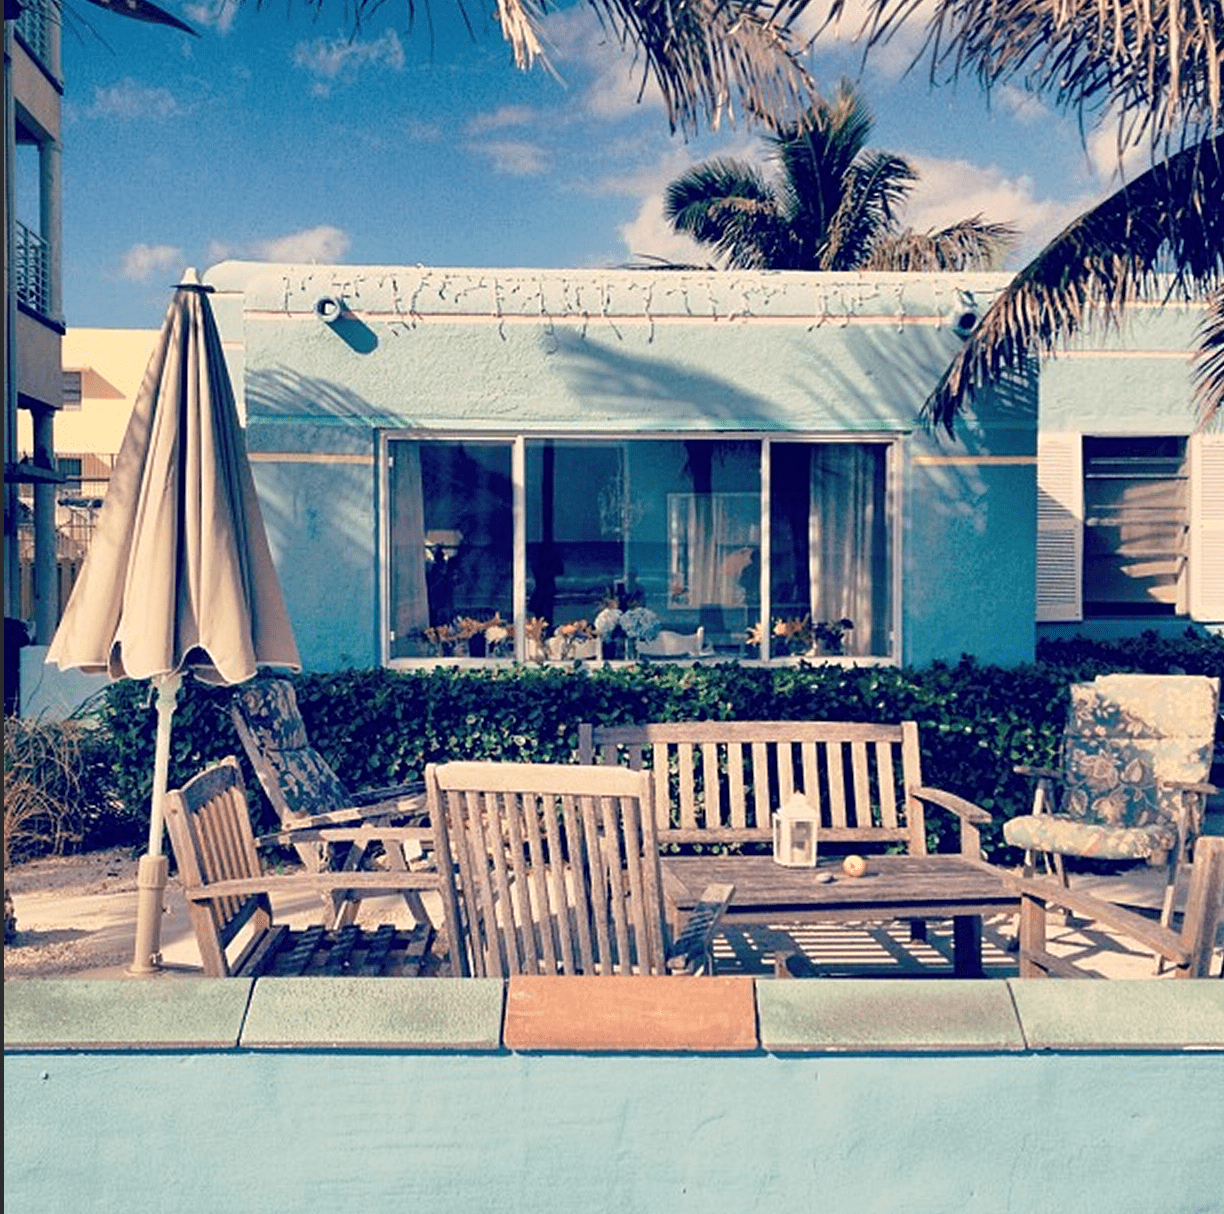 a light blue house in florida